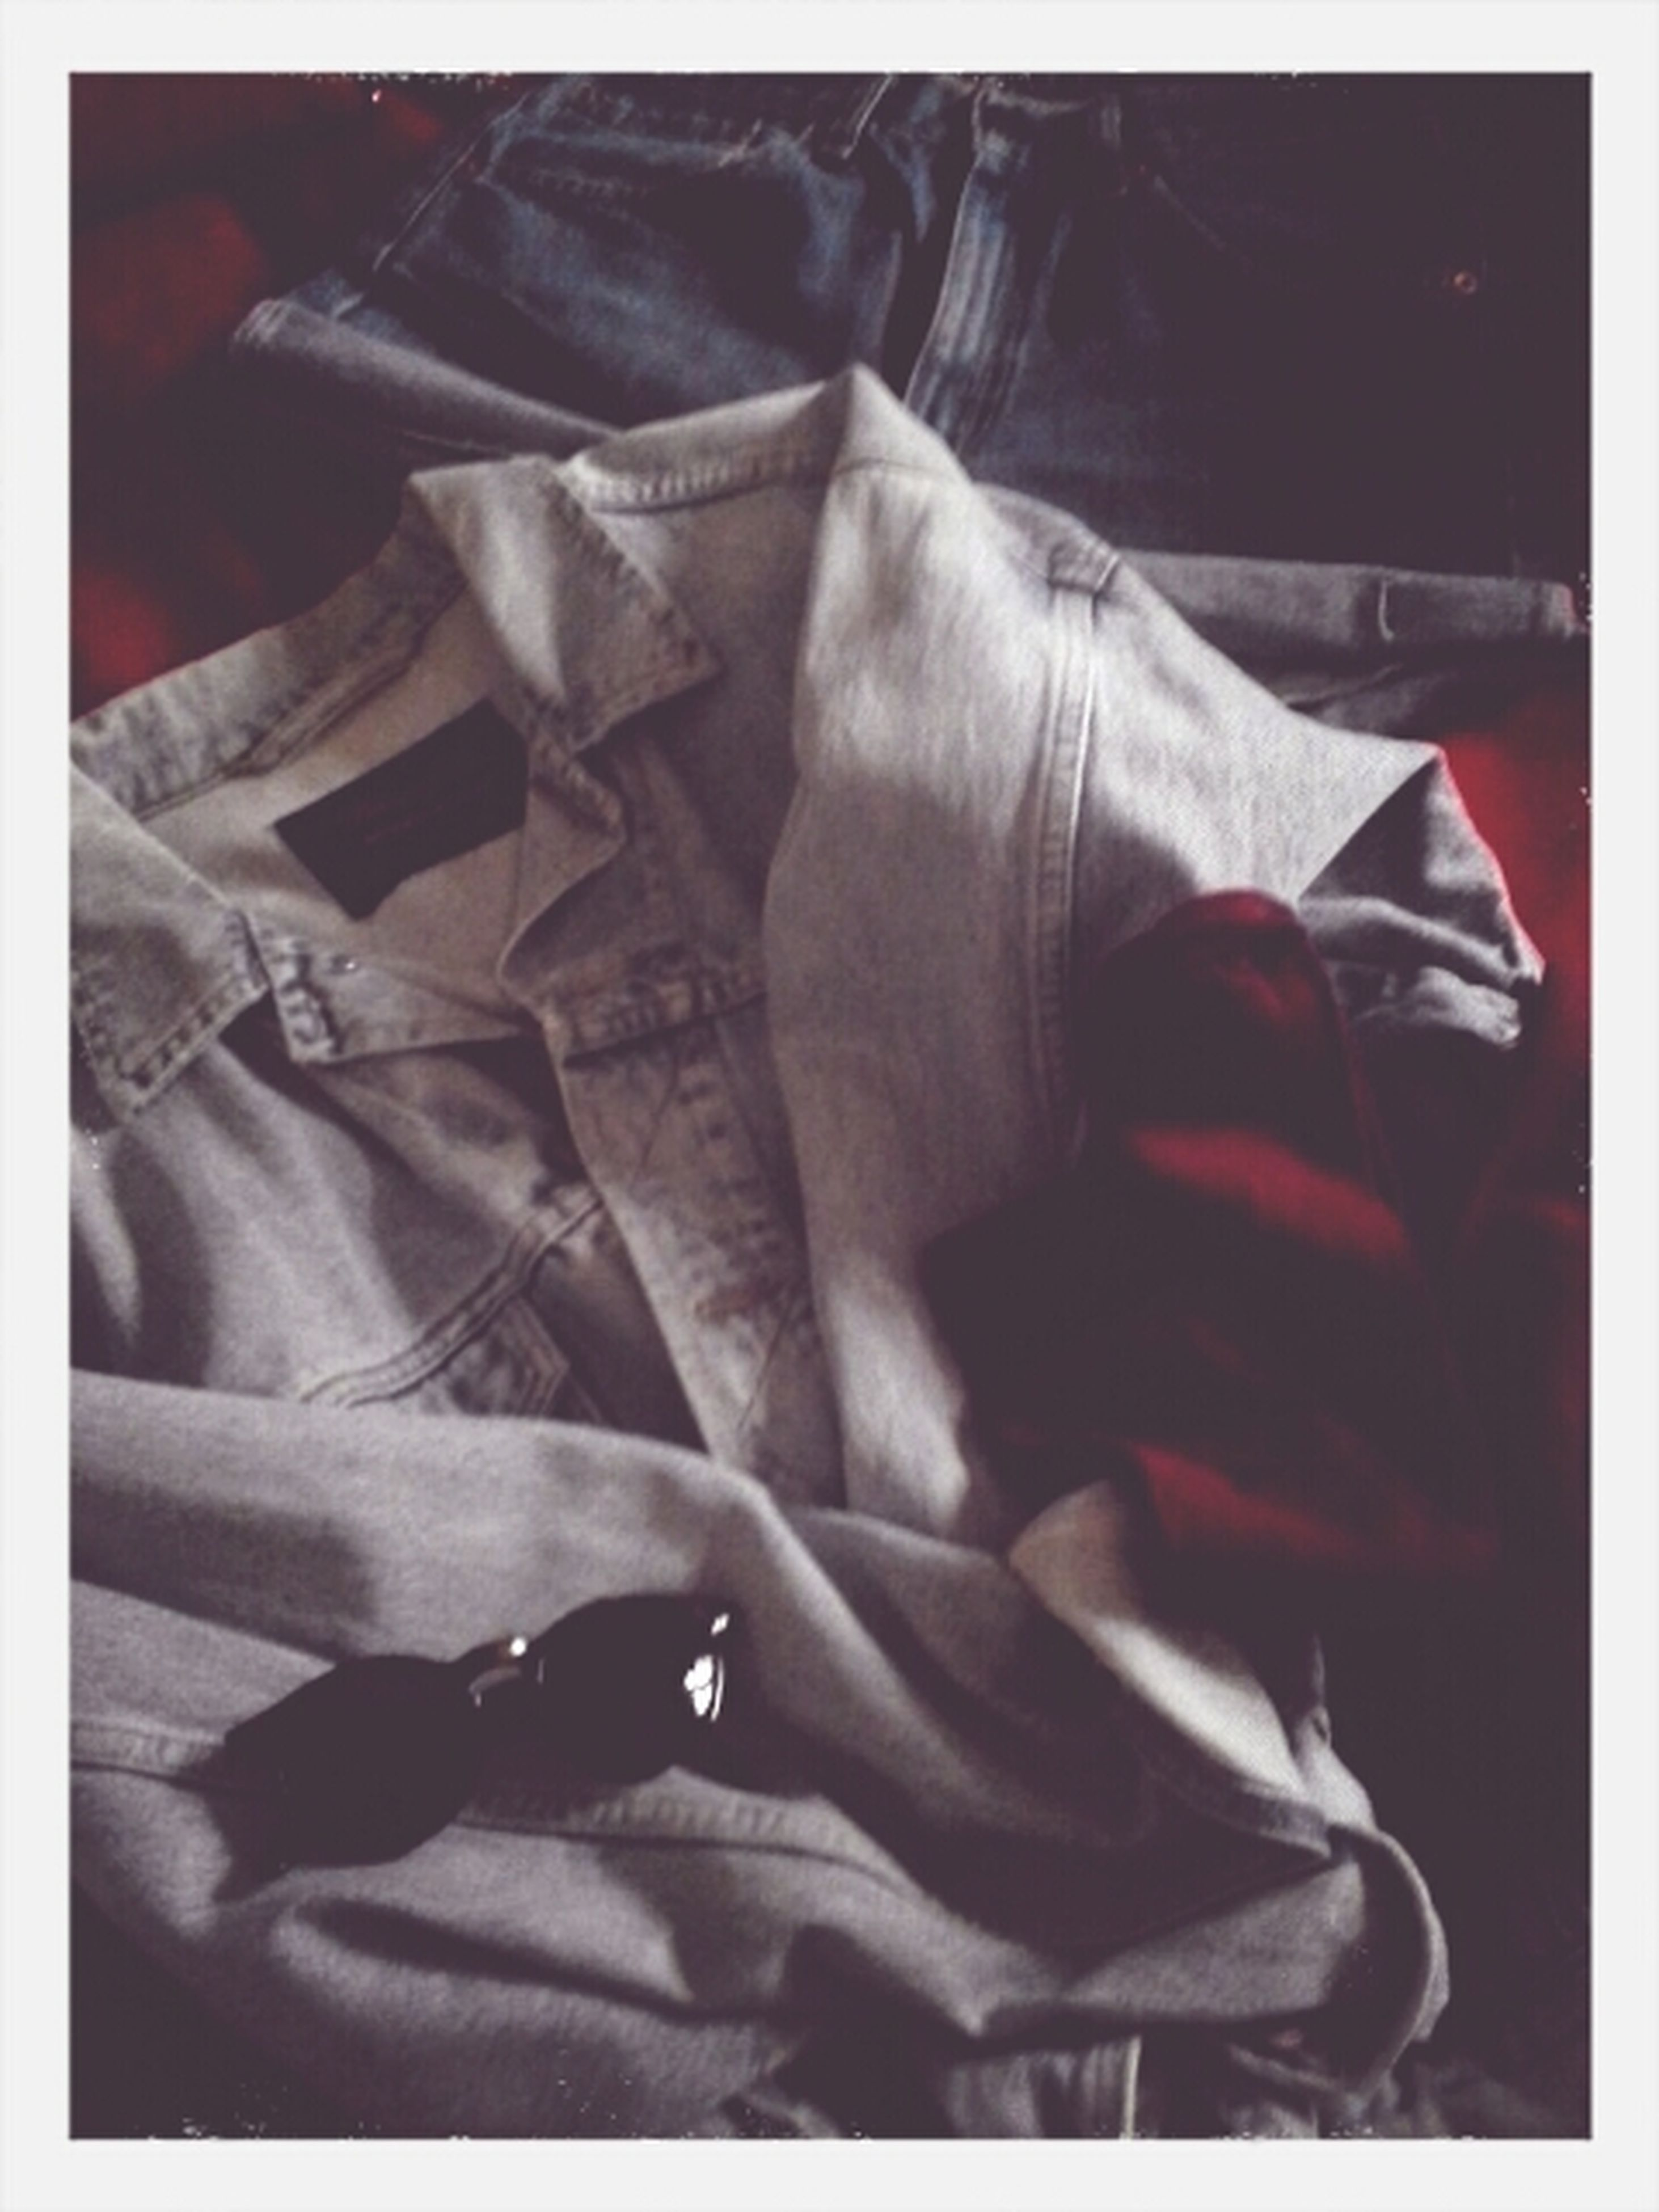 transfer print, auto post production filter, indoors, lifestyles, men, low section, person, leisure activity, close-up, casual clothing, sitting, midsection, day, relaxation, jeans, bed